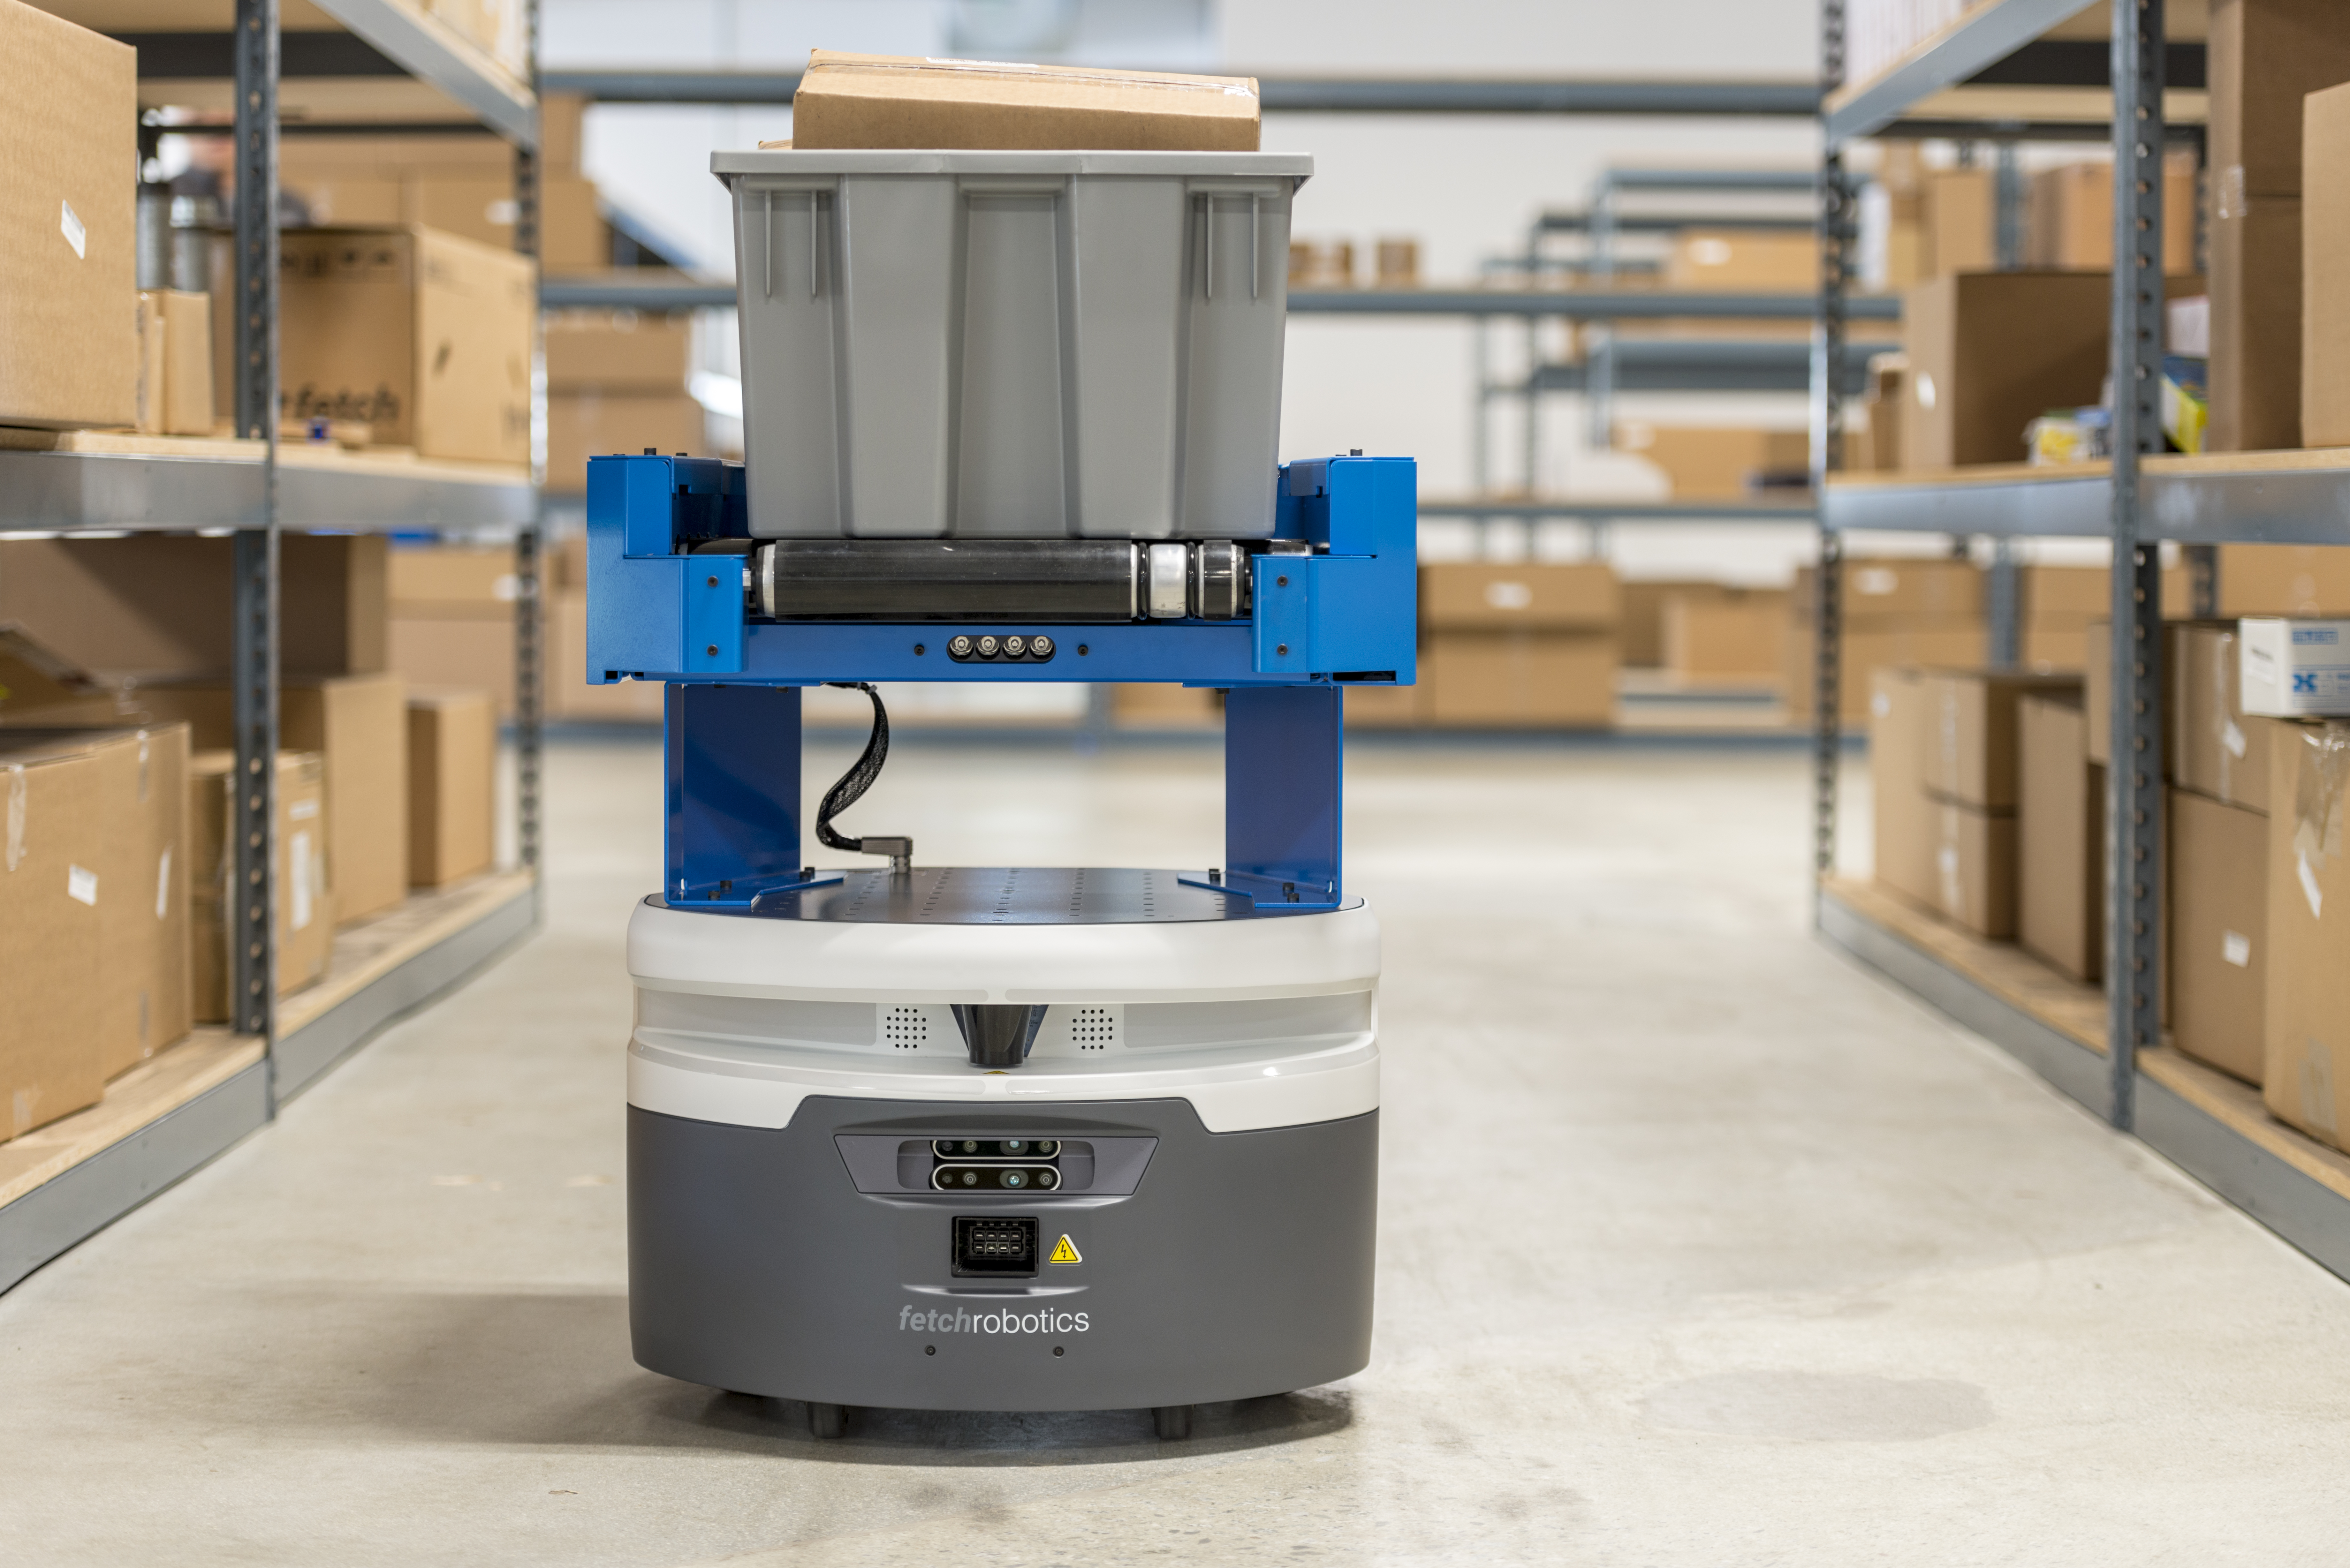 Fetch adds two new robots to its warehouse automation army